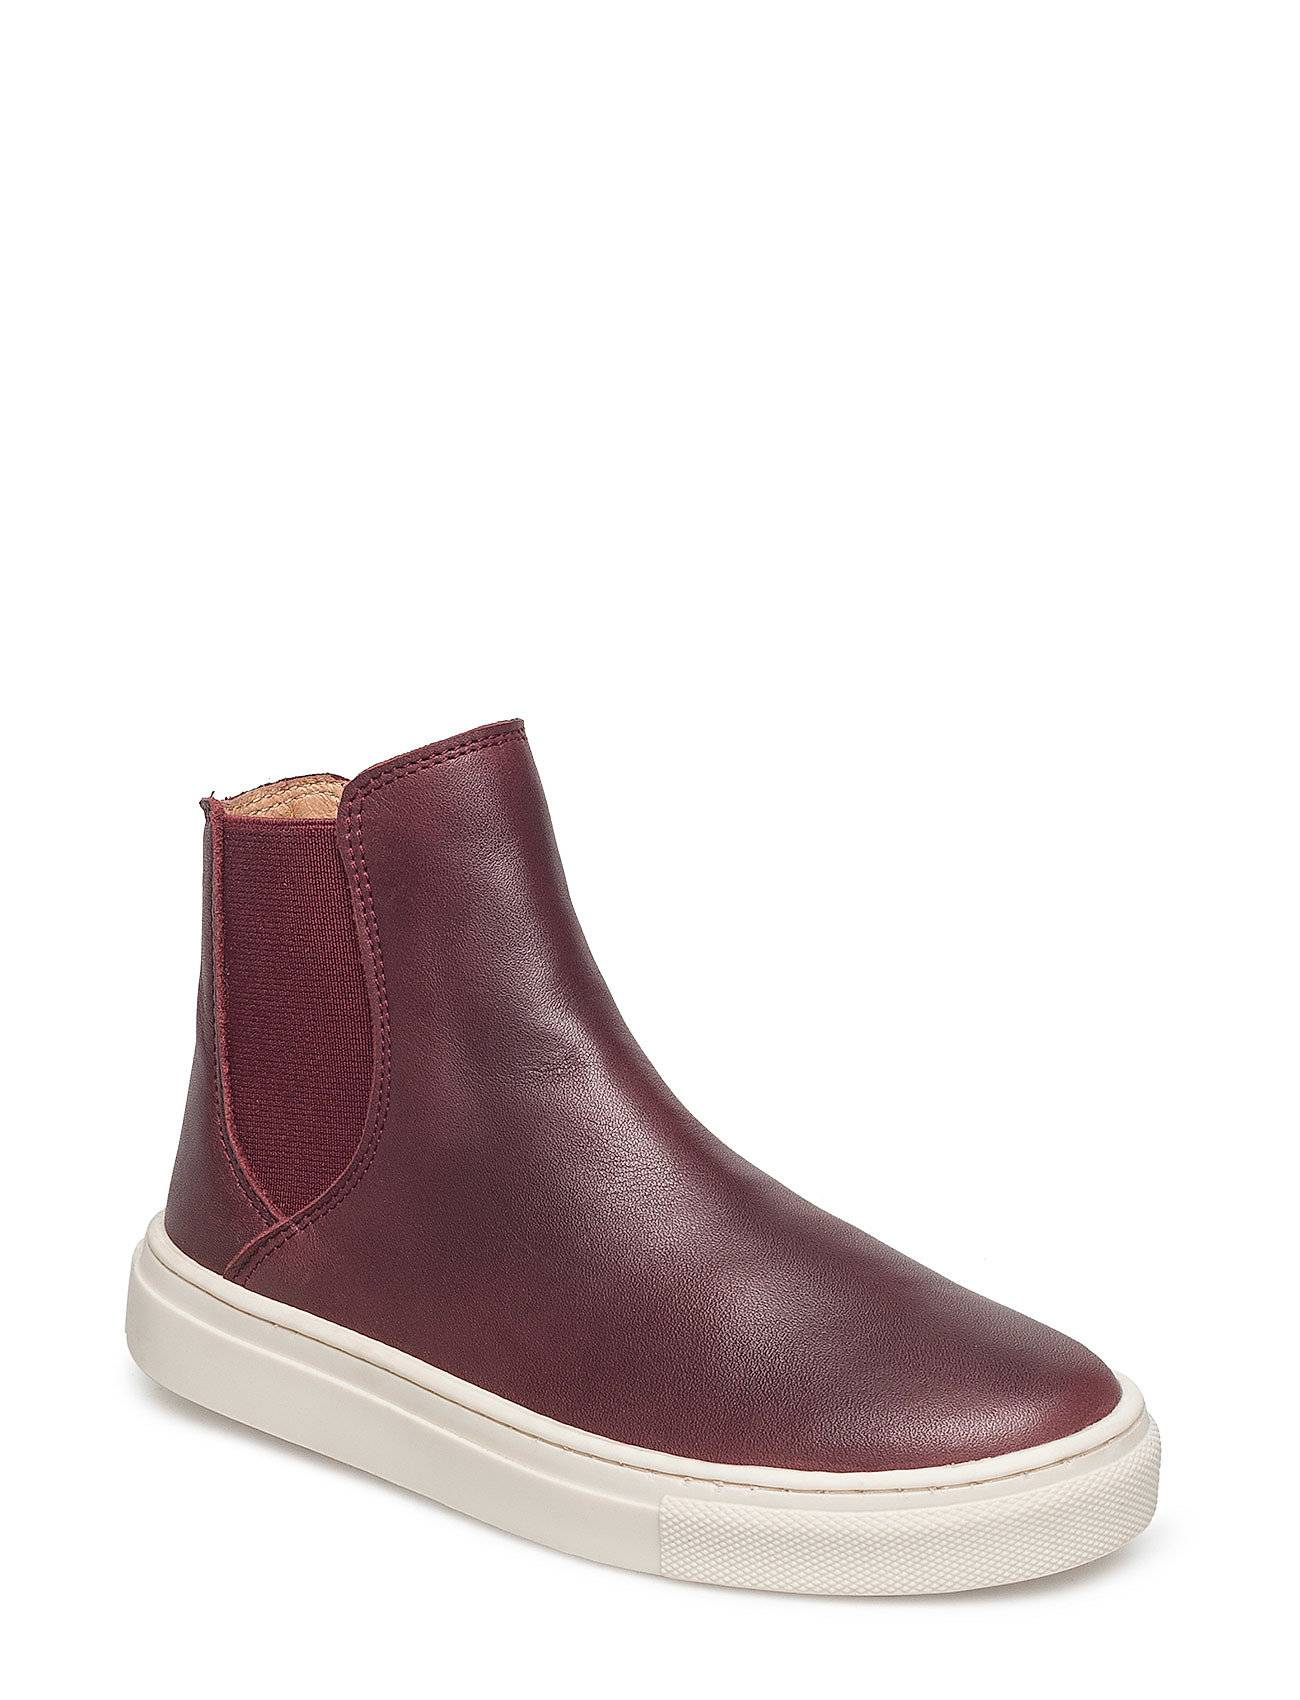 Move by Melton Girls - Sneaker Boot